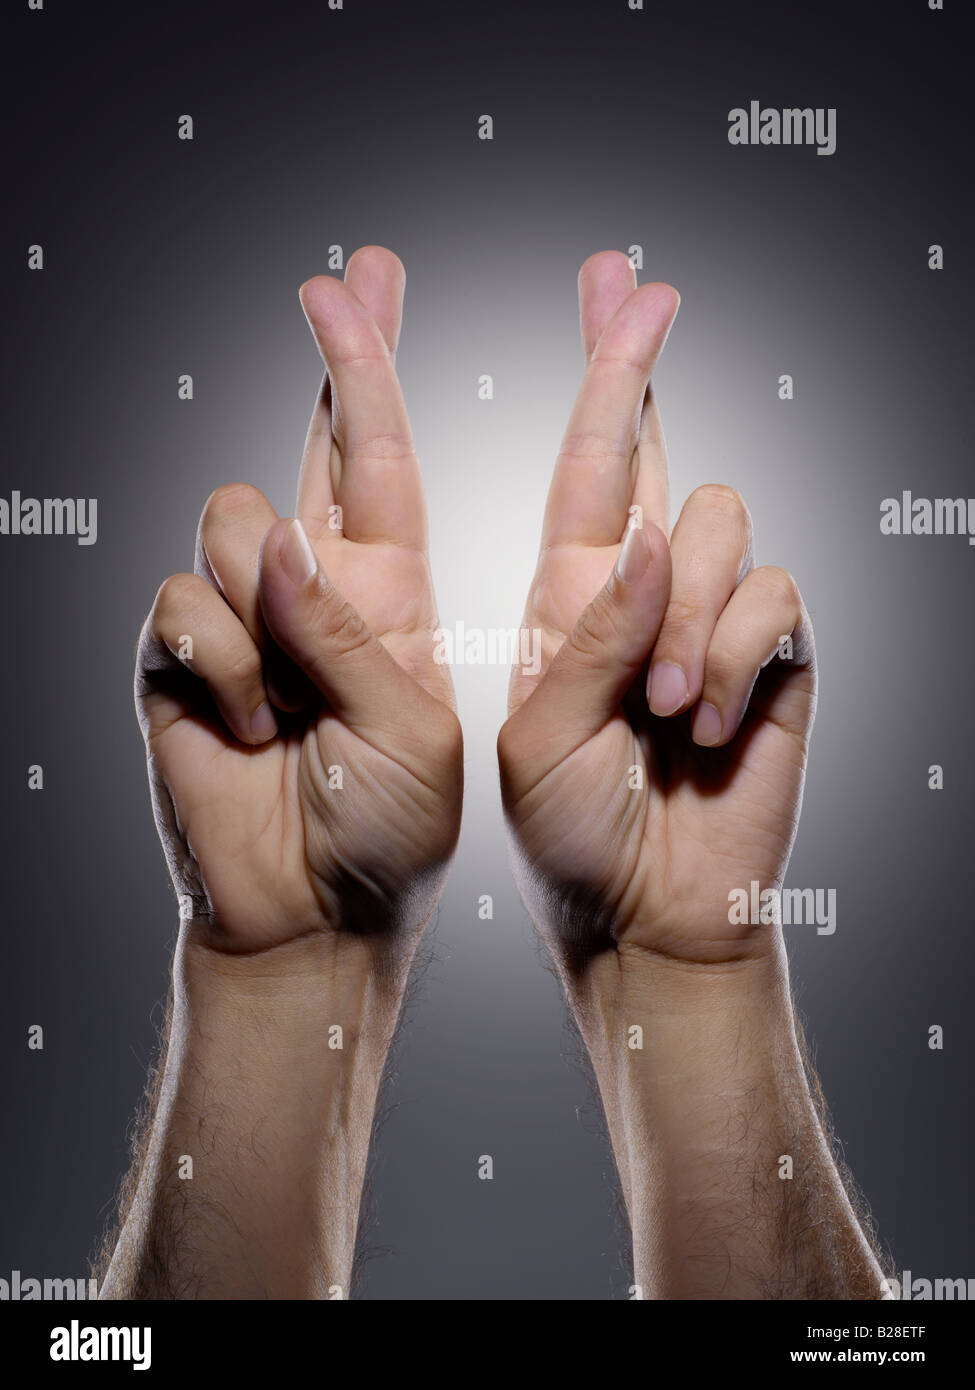 Keep both fingers crossed - Stock Image